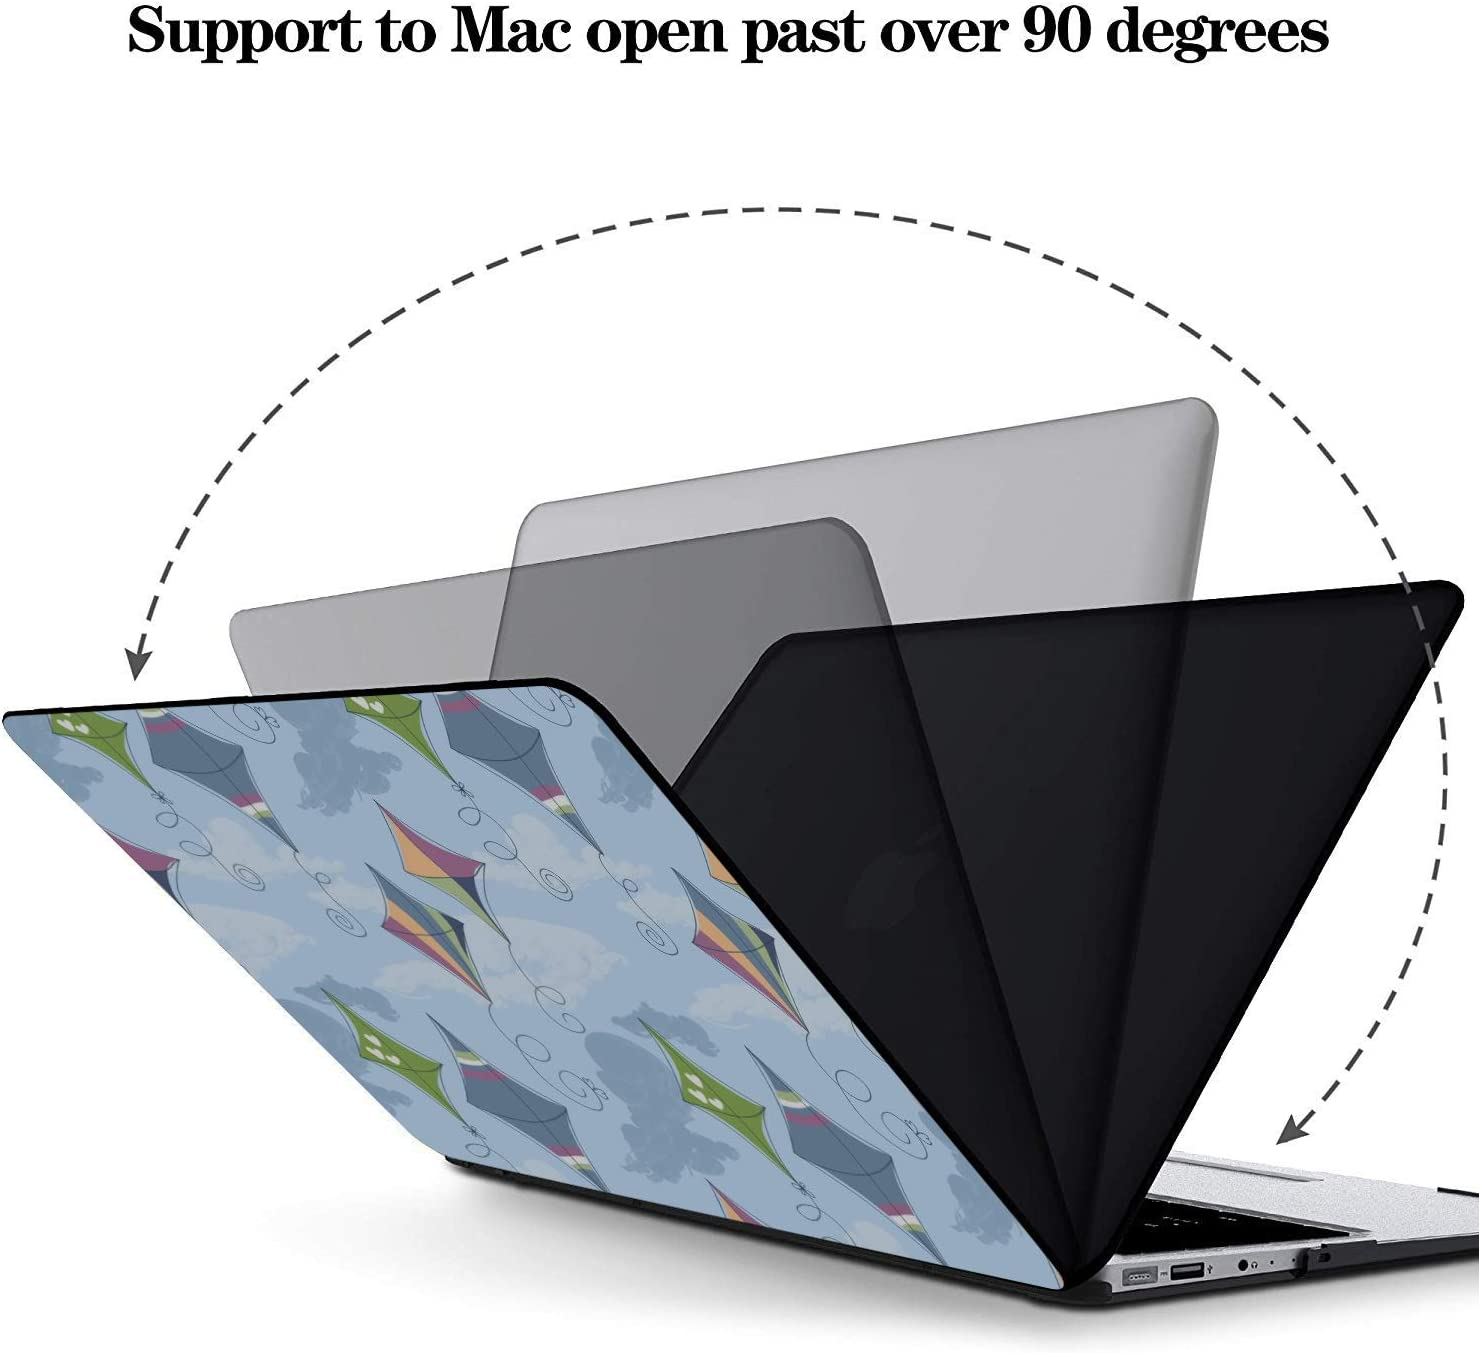 MacBook Pro 2016 Case Spring Children Play Game Toy Kite Plastic Hard Shell Compatible Mac Air 11 Pro 13 15 Case for MacBook Protection for MacBook 2016-2019 Version